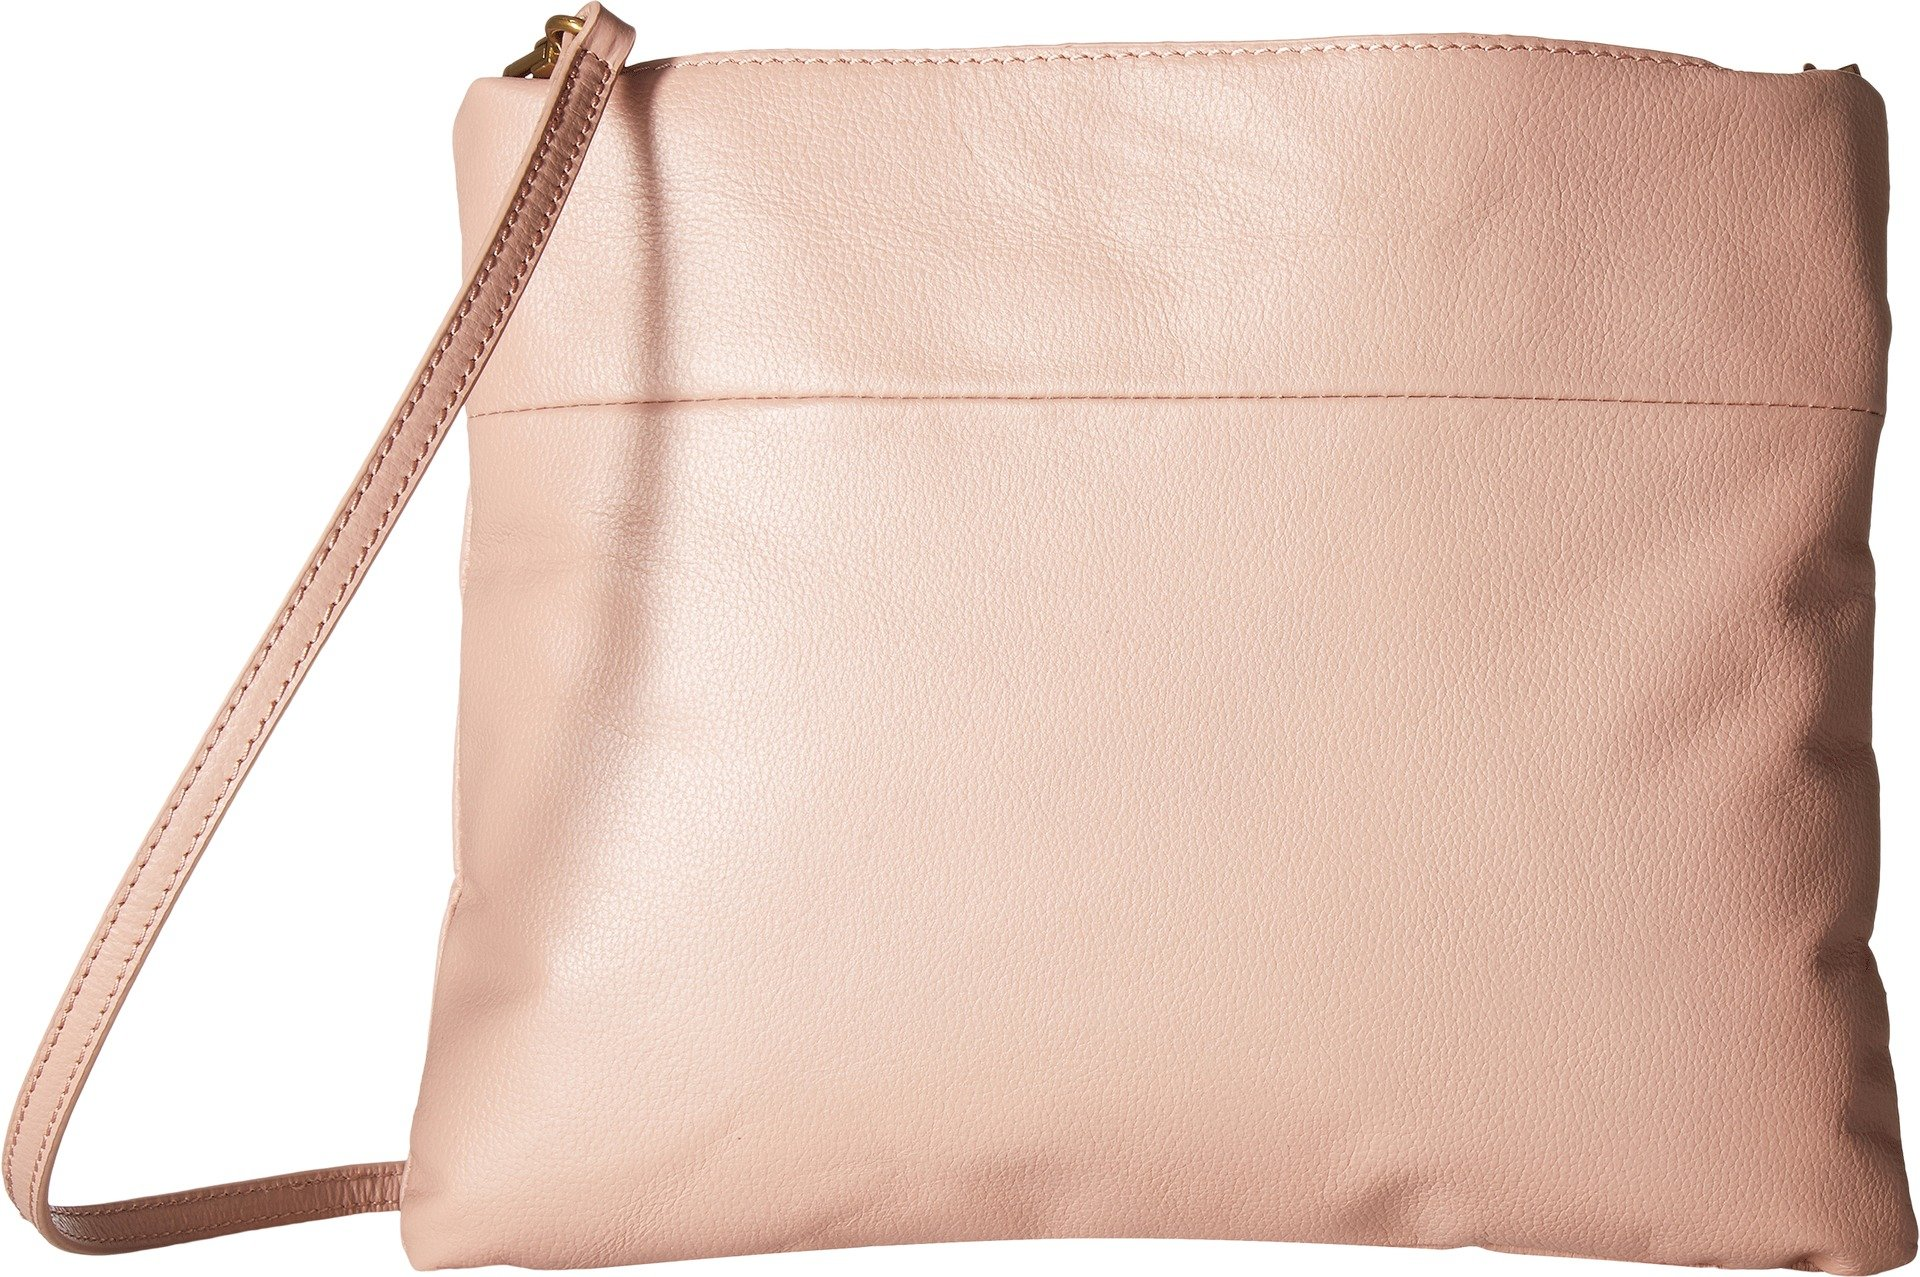 The Sak Women's Tomboy Convertible Clutch by The Sak Collective Fawn One Size